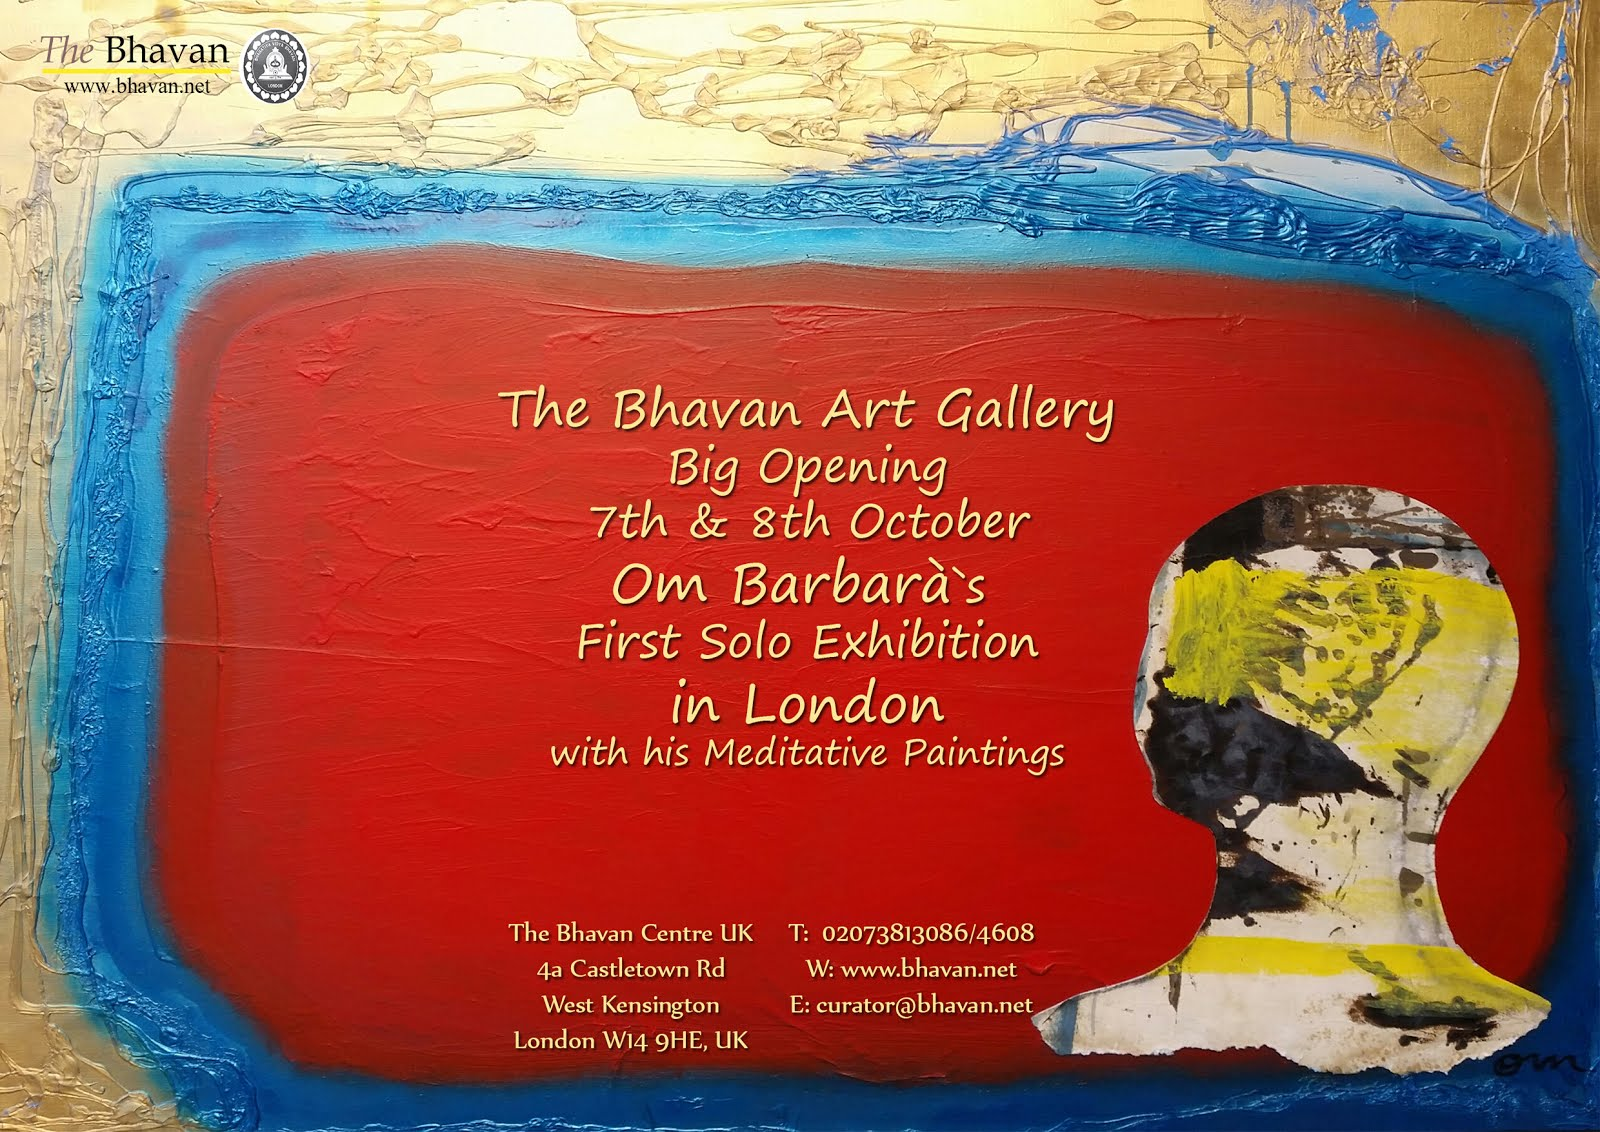 Coming soon exhibition in London